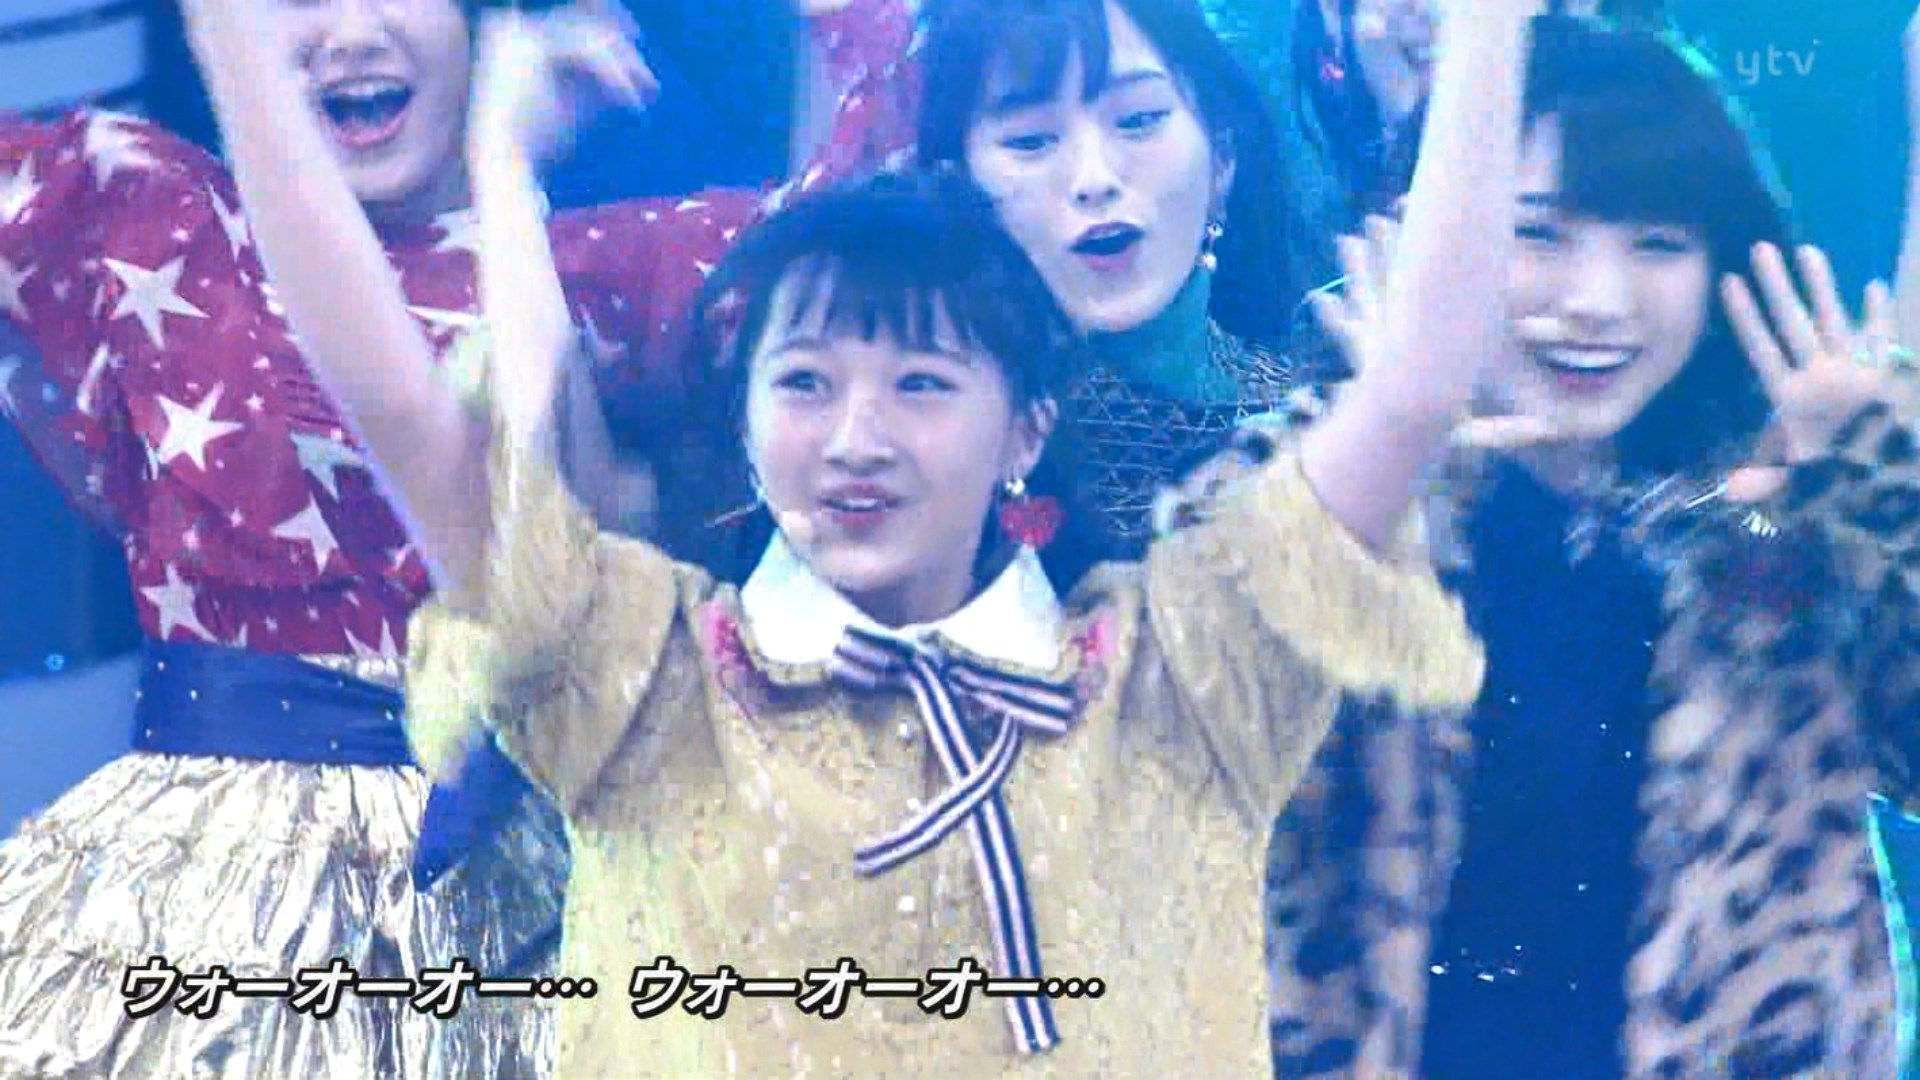 NMB48ワロタピーポーキャプ画像